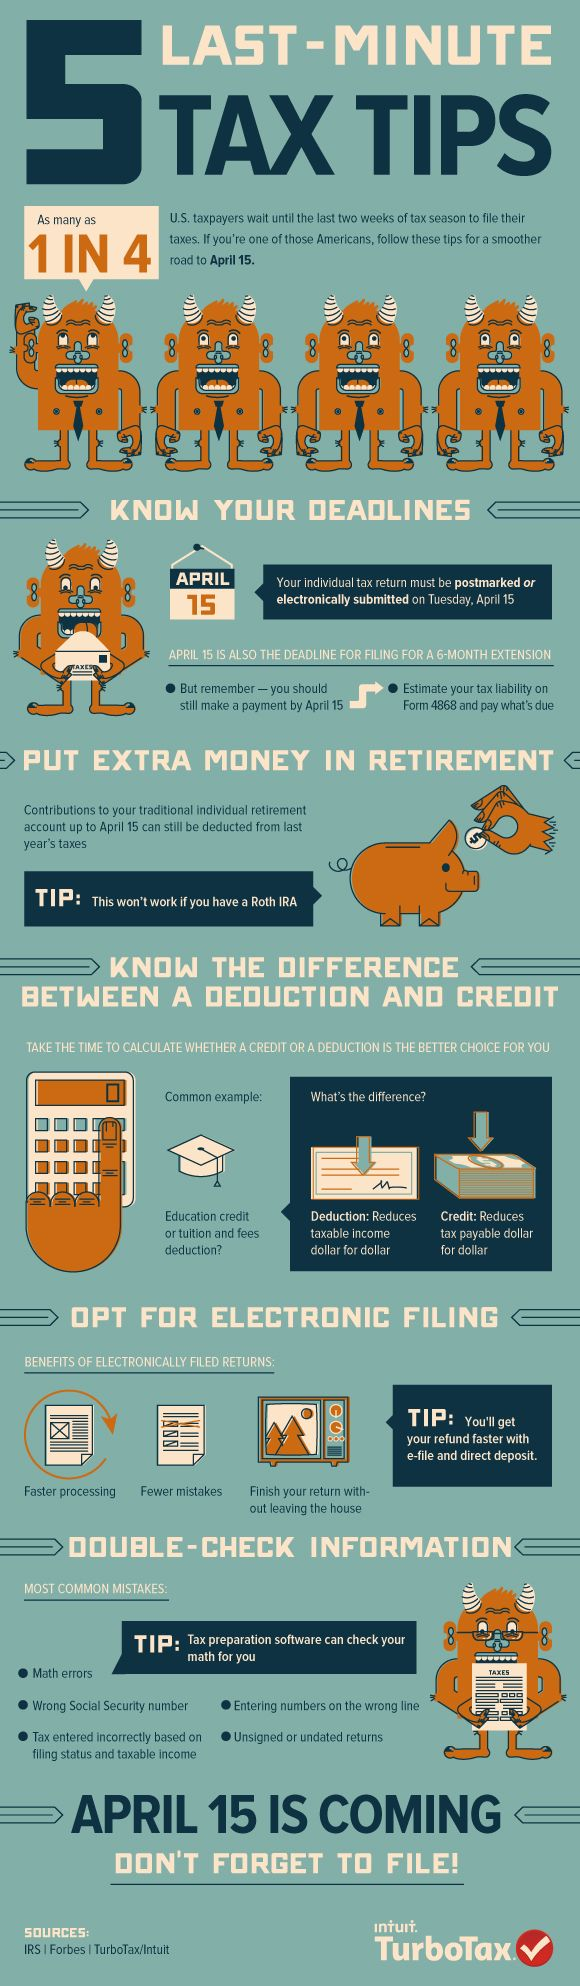 5 Last Minute Tax Tips - Know your deadline! 1 in 4 taxpayers wait until the last two weeks to file taxes. Learn what the difference between a deduction and a credit is and 4 other helpful tips in this infographic by @TurboTax